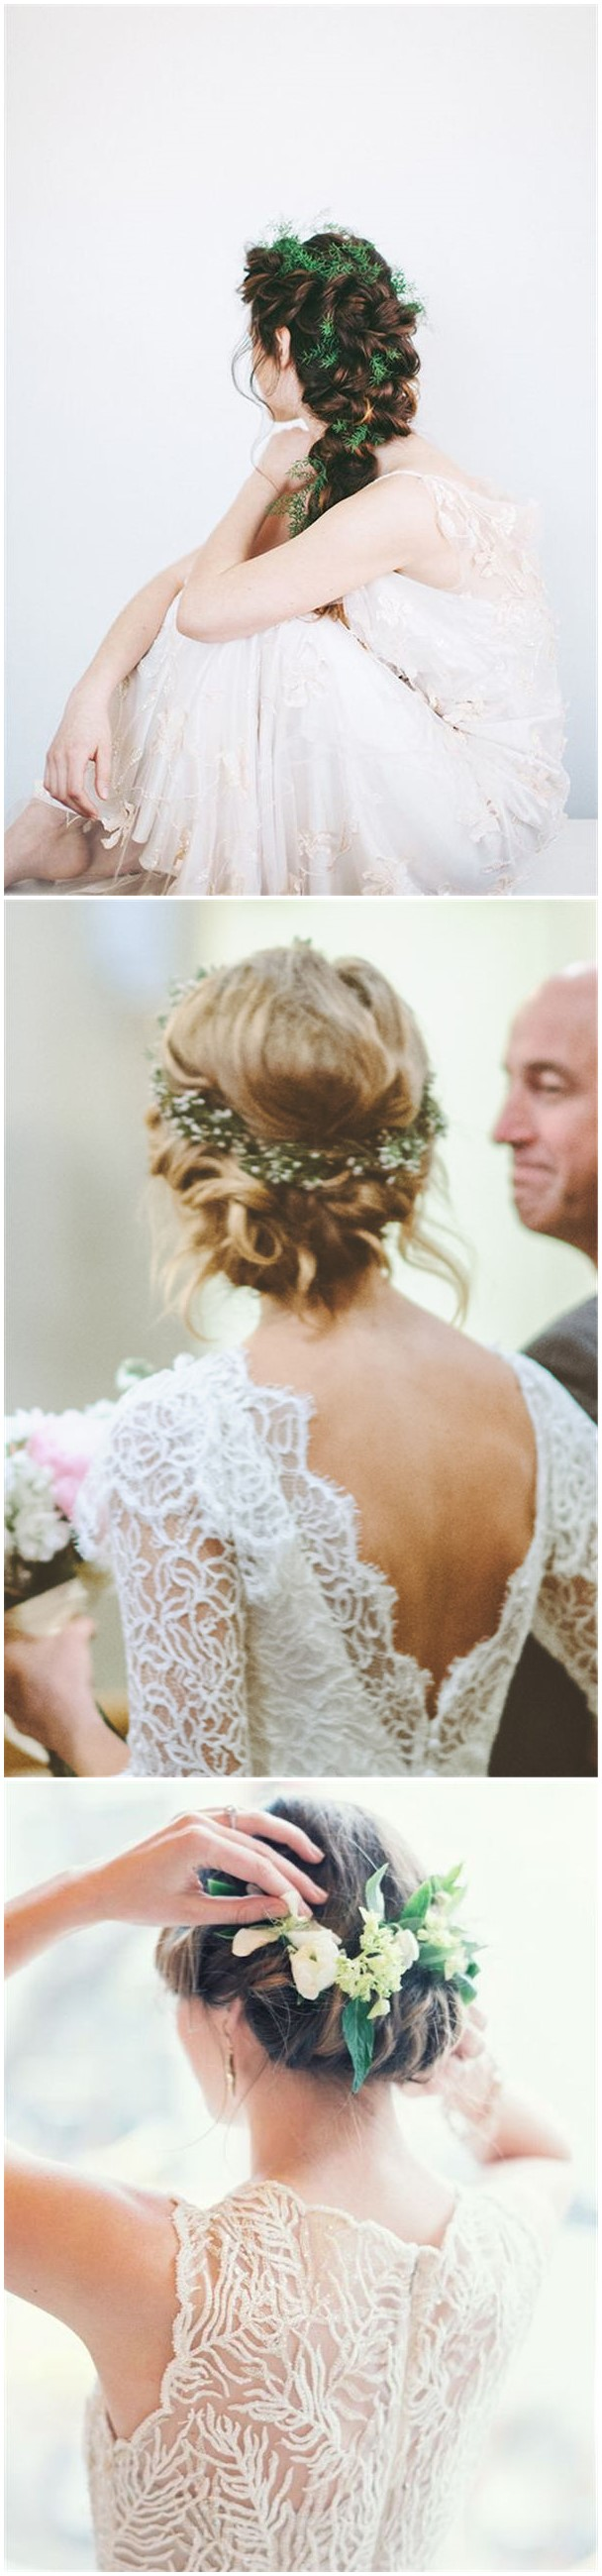 18 Wedding Updo Hairstyles with Greenery Decorations | Greenery ...